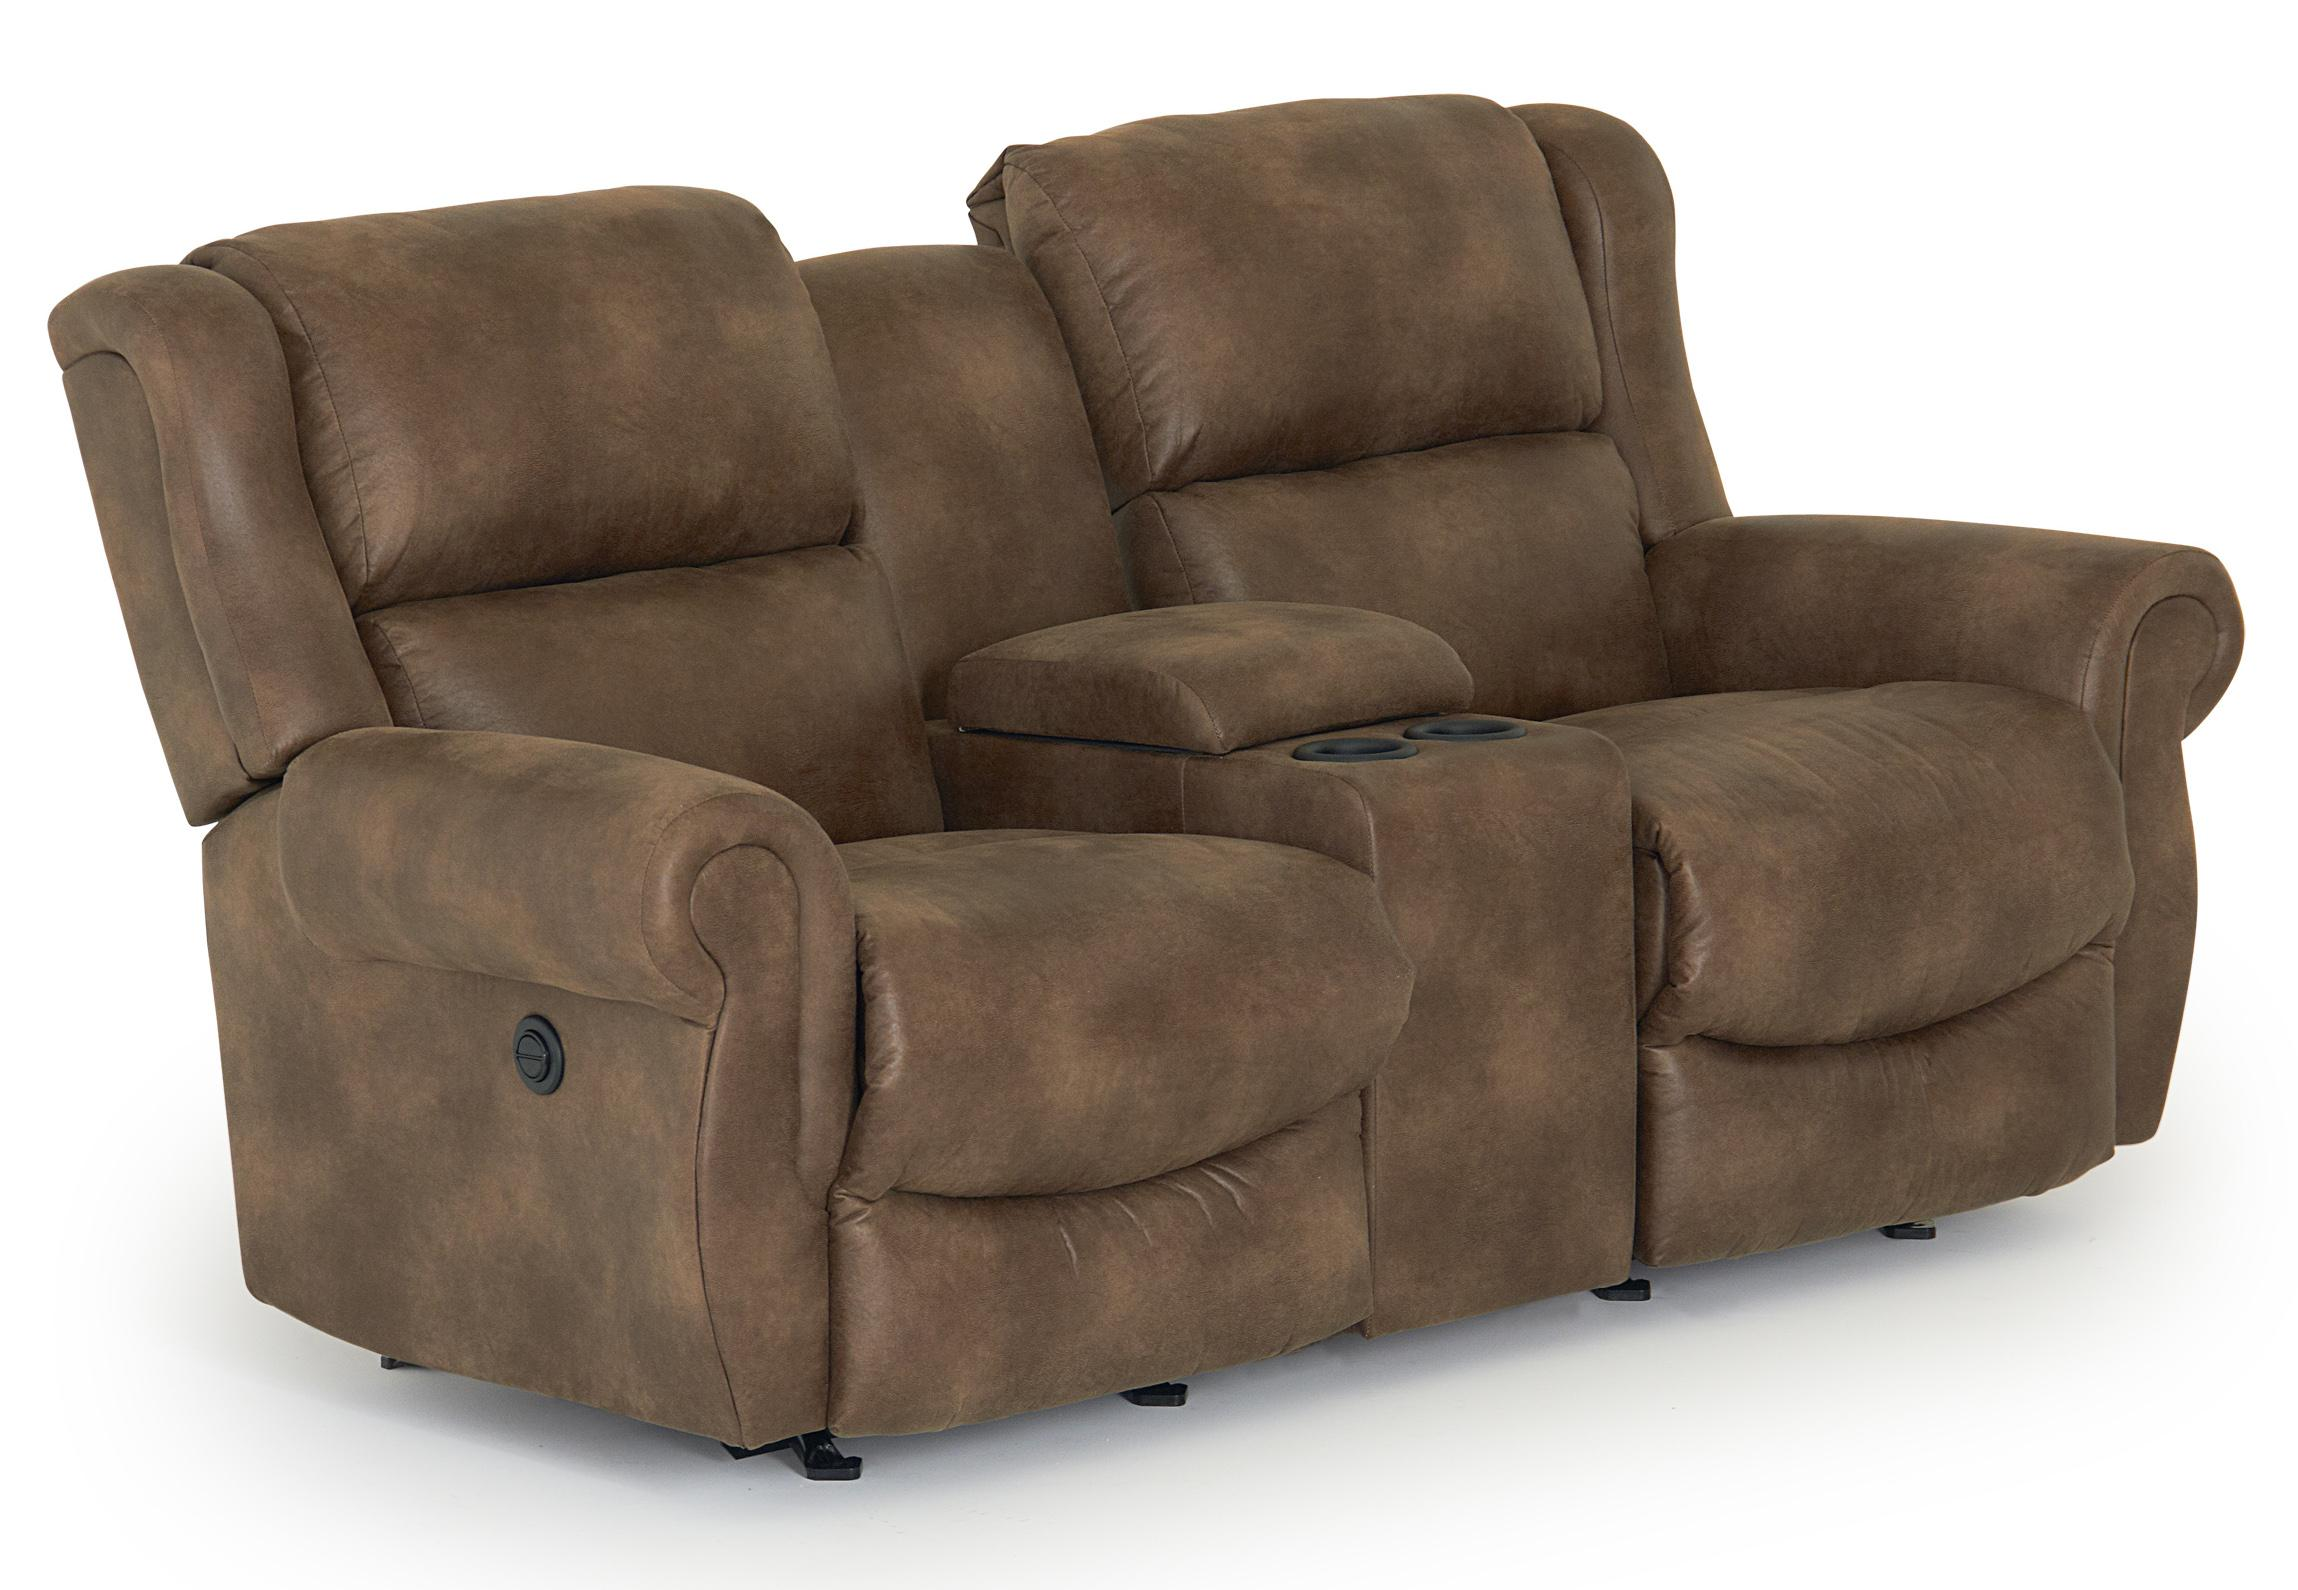 Best Home Furnishings Terrill Transitional Space Saver Reclining Loveseat With Drink Console